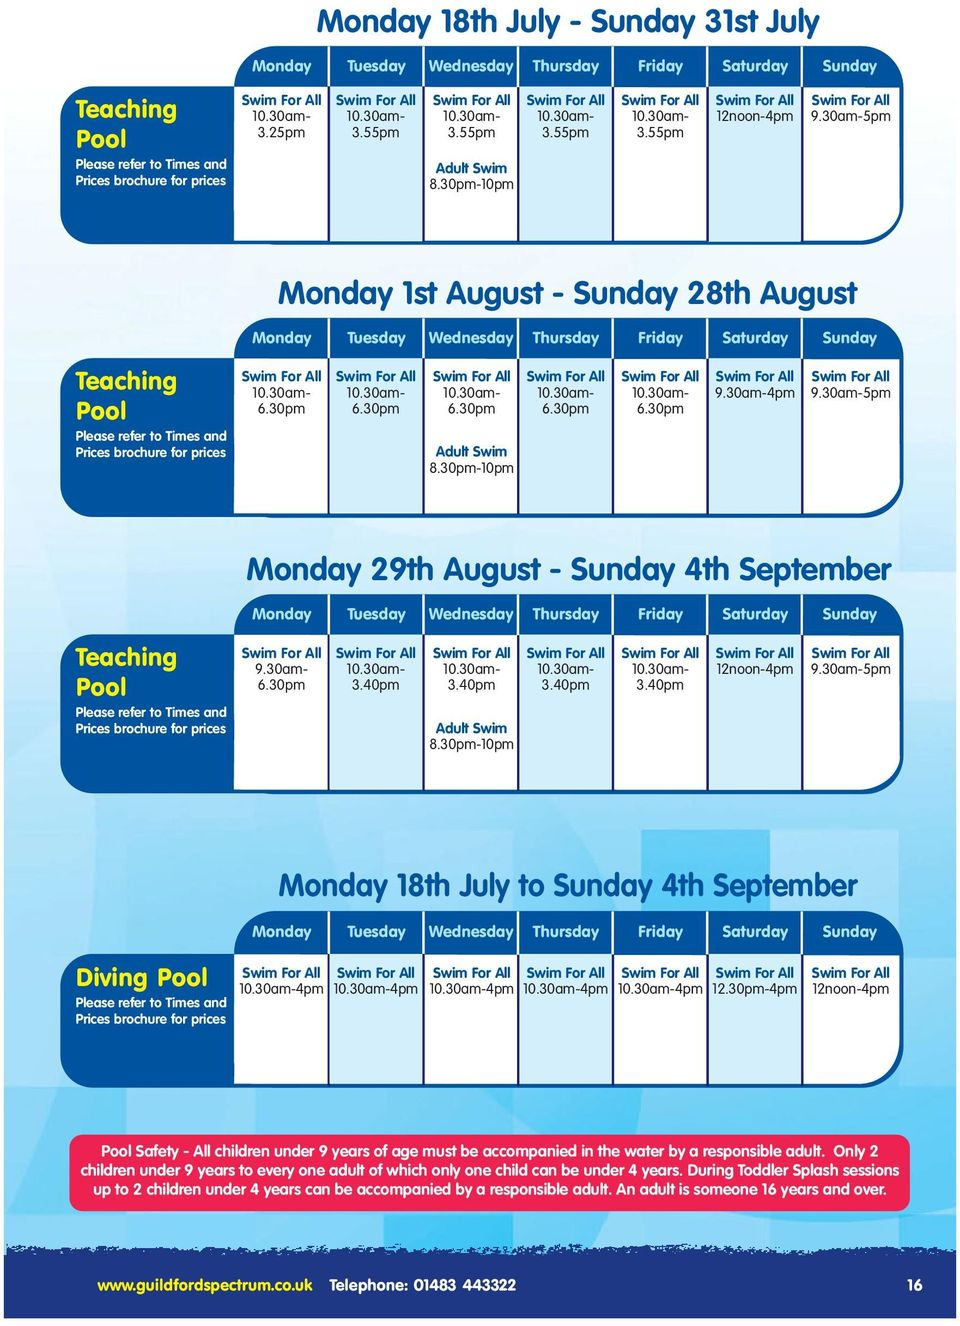 30am-5pm Monday 1st August - Sunday 28th August Monday Tuesday Wednesday Thursday Friday Saturday Sunday Teaching Pool Please refer to Times and Prices brochure for prices Adult Swim 8.30pm-10pm 9.